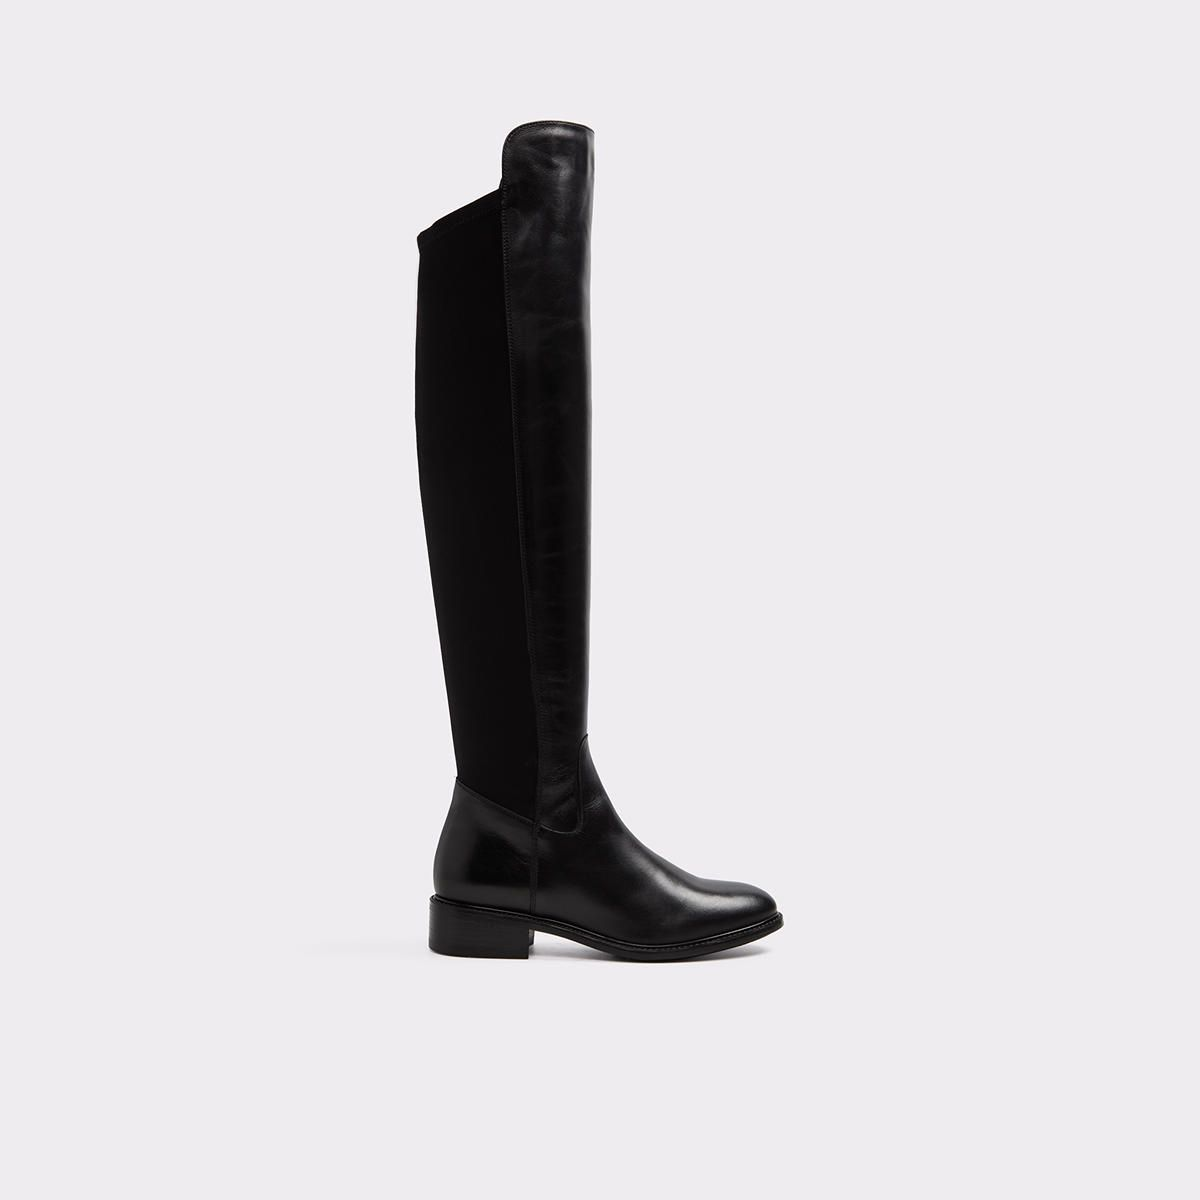 Boots, Leather riding boots